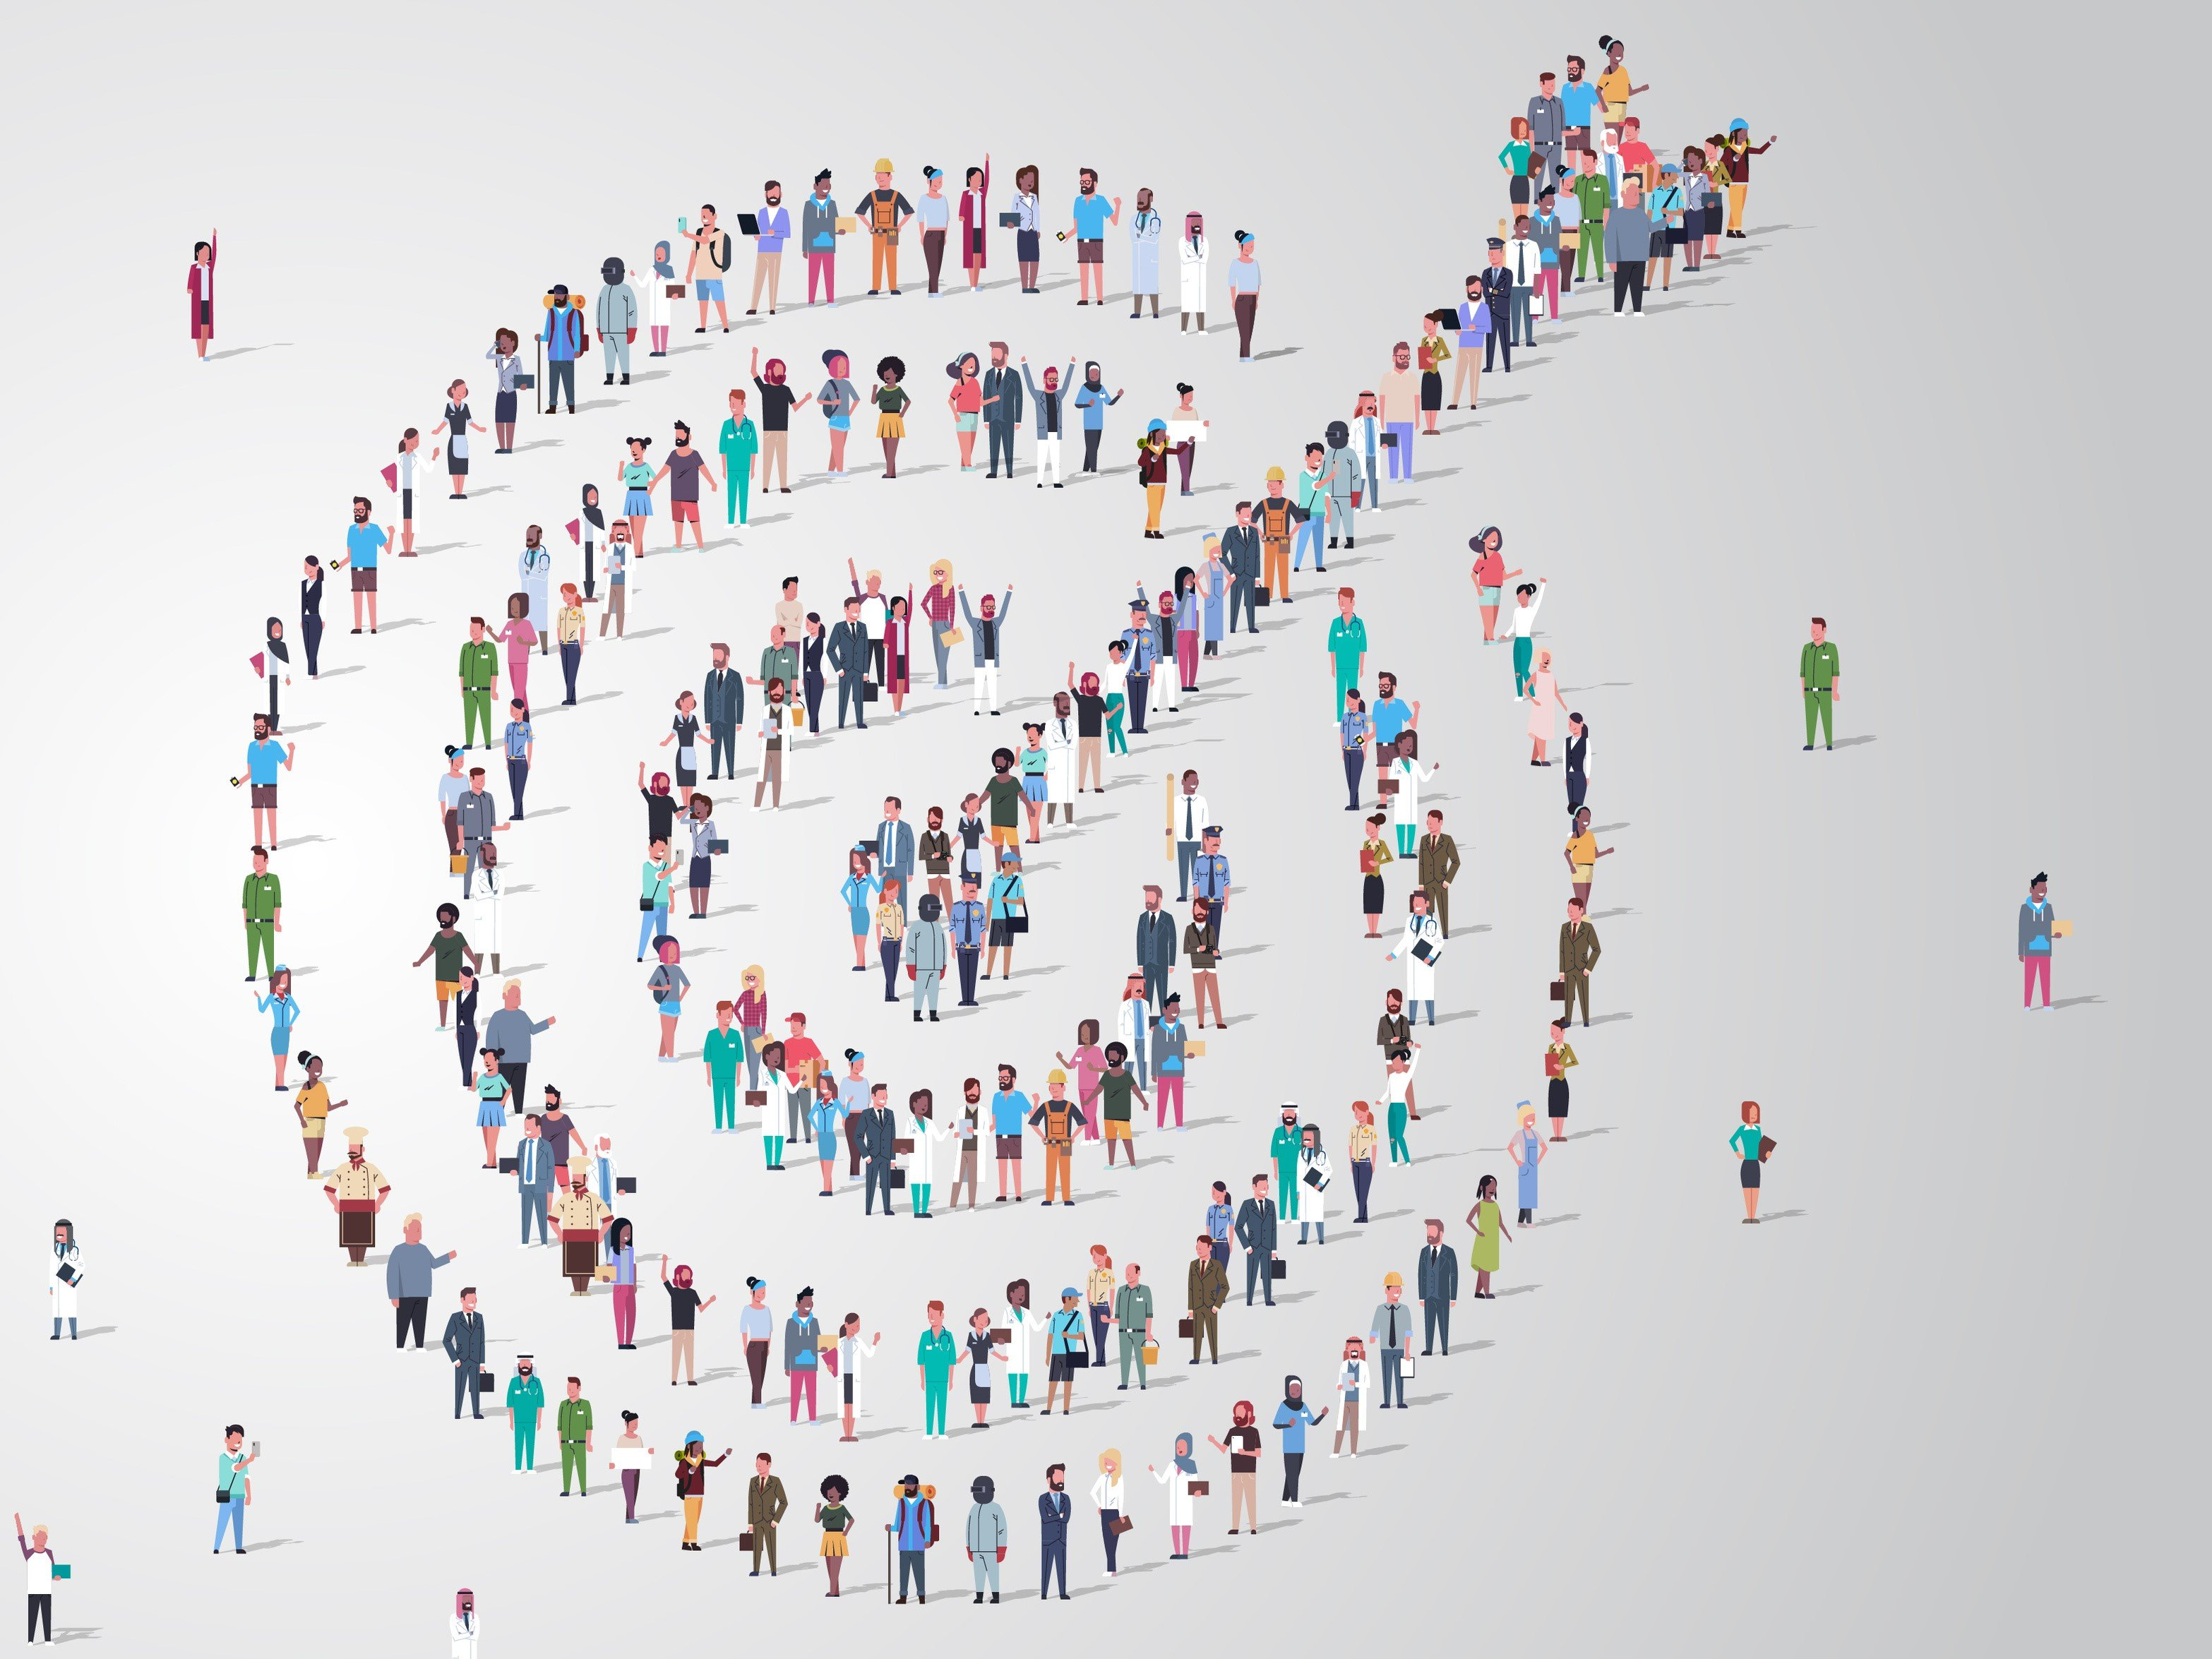 colorful, aerial drawing of people forming an arrow in a bullseye, grey background